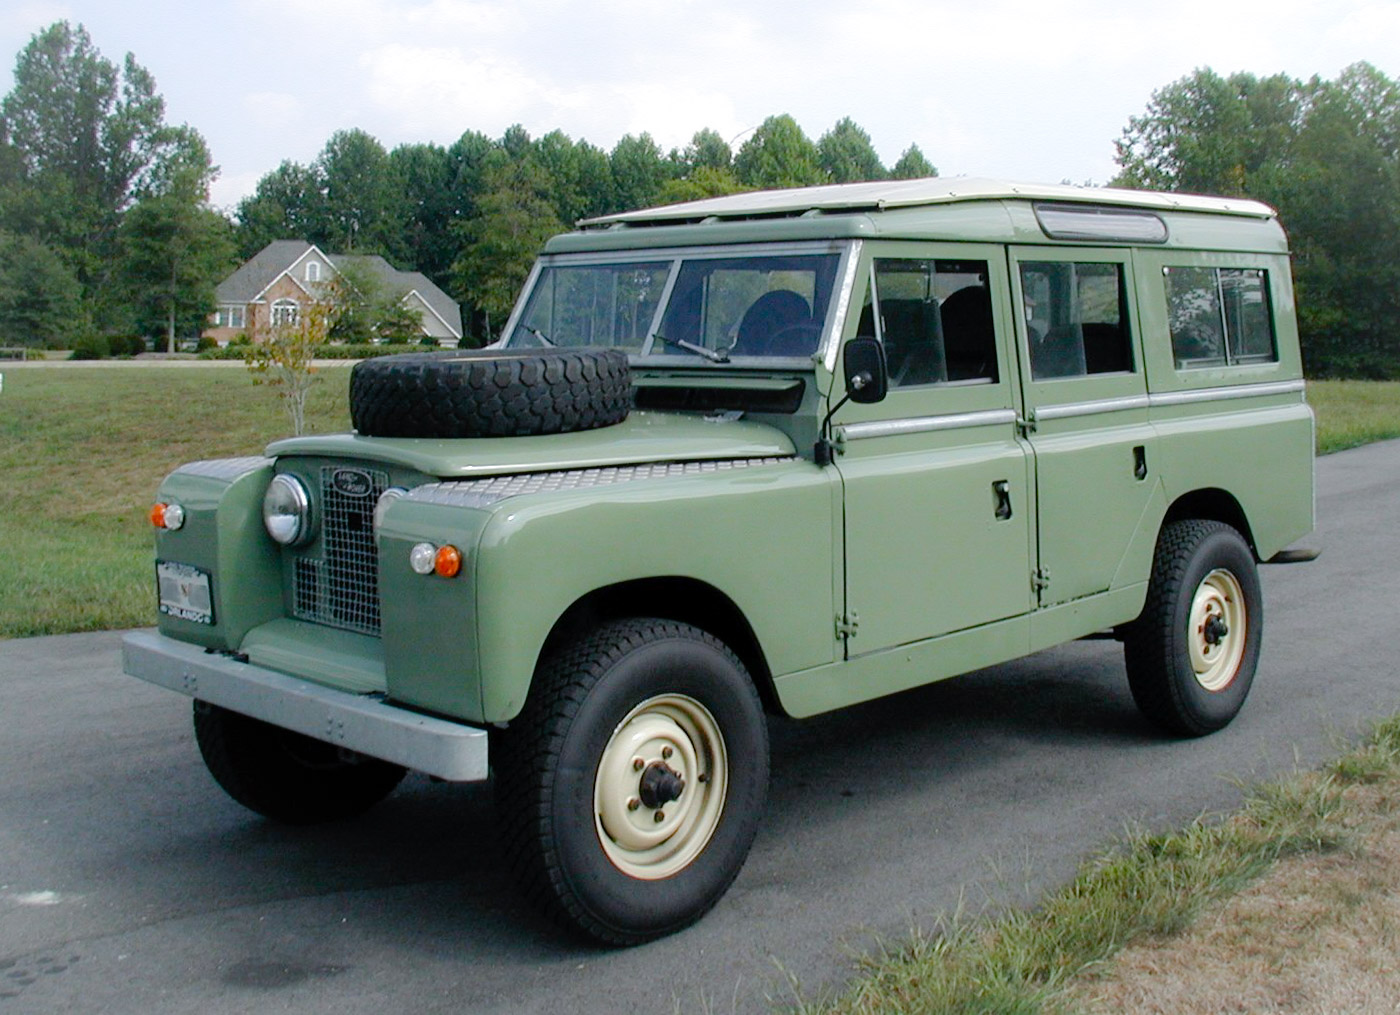 https://upload.wikimedia.org/wikipedia/commons/0/0d/LandRoverIIALWB.jpg